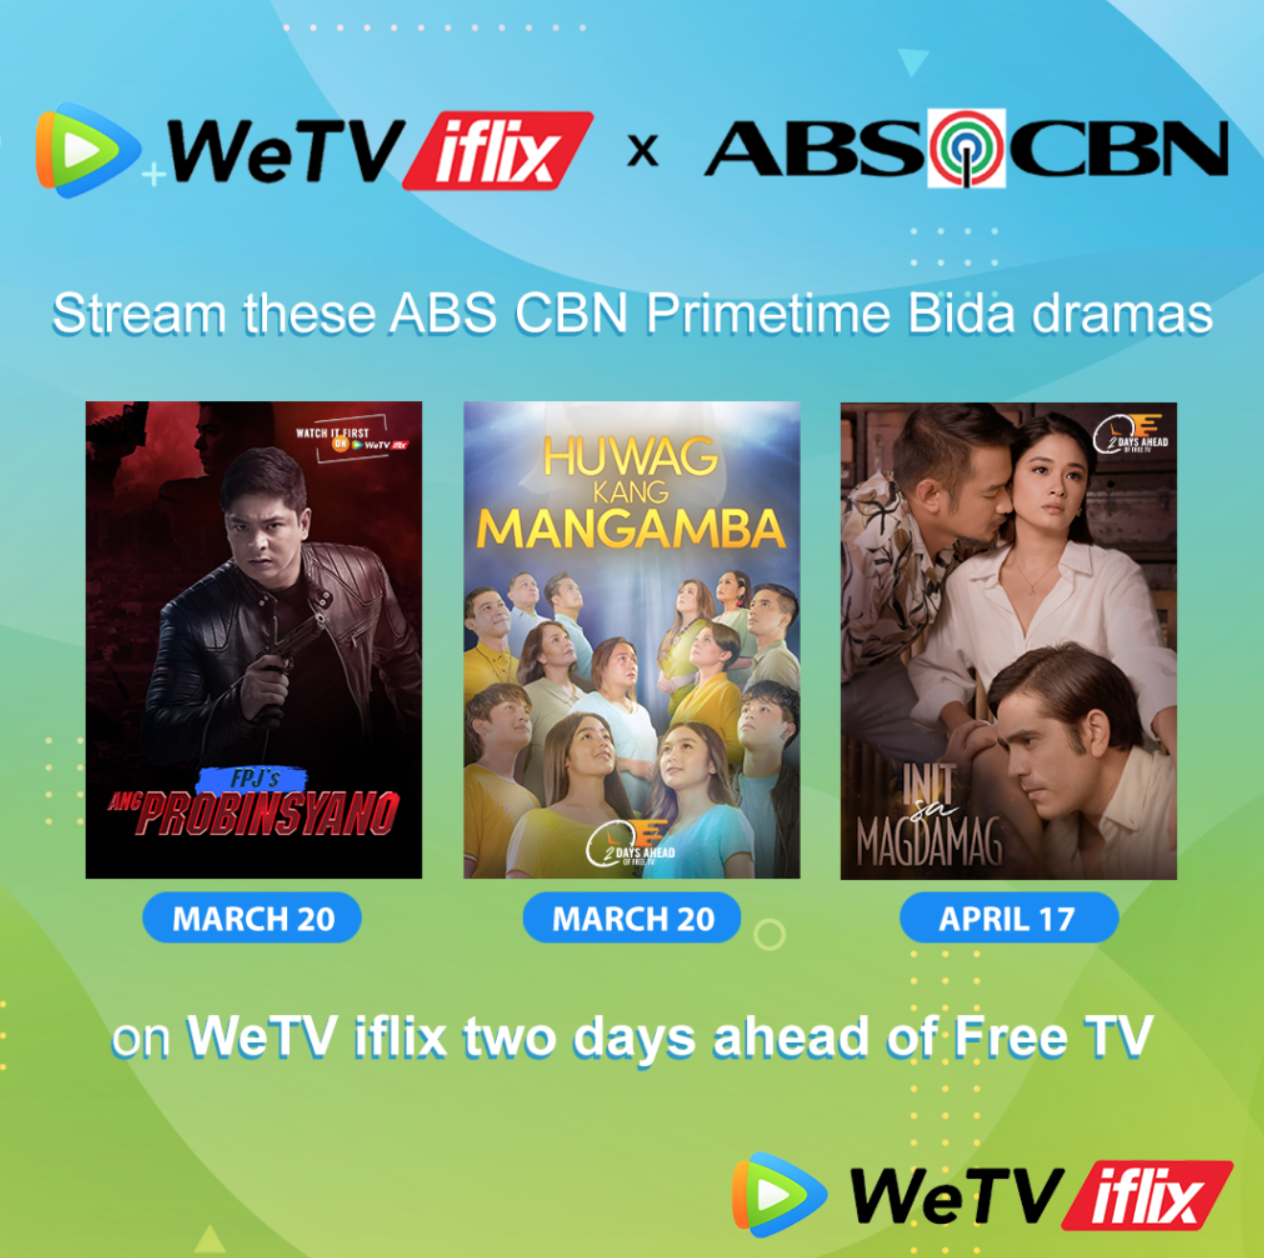 WeTV iflix, ABS-CBN join forces to bring the best entertainment experience